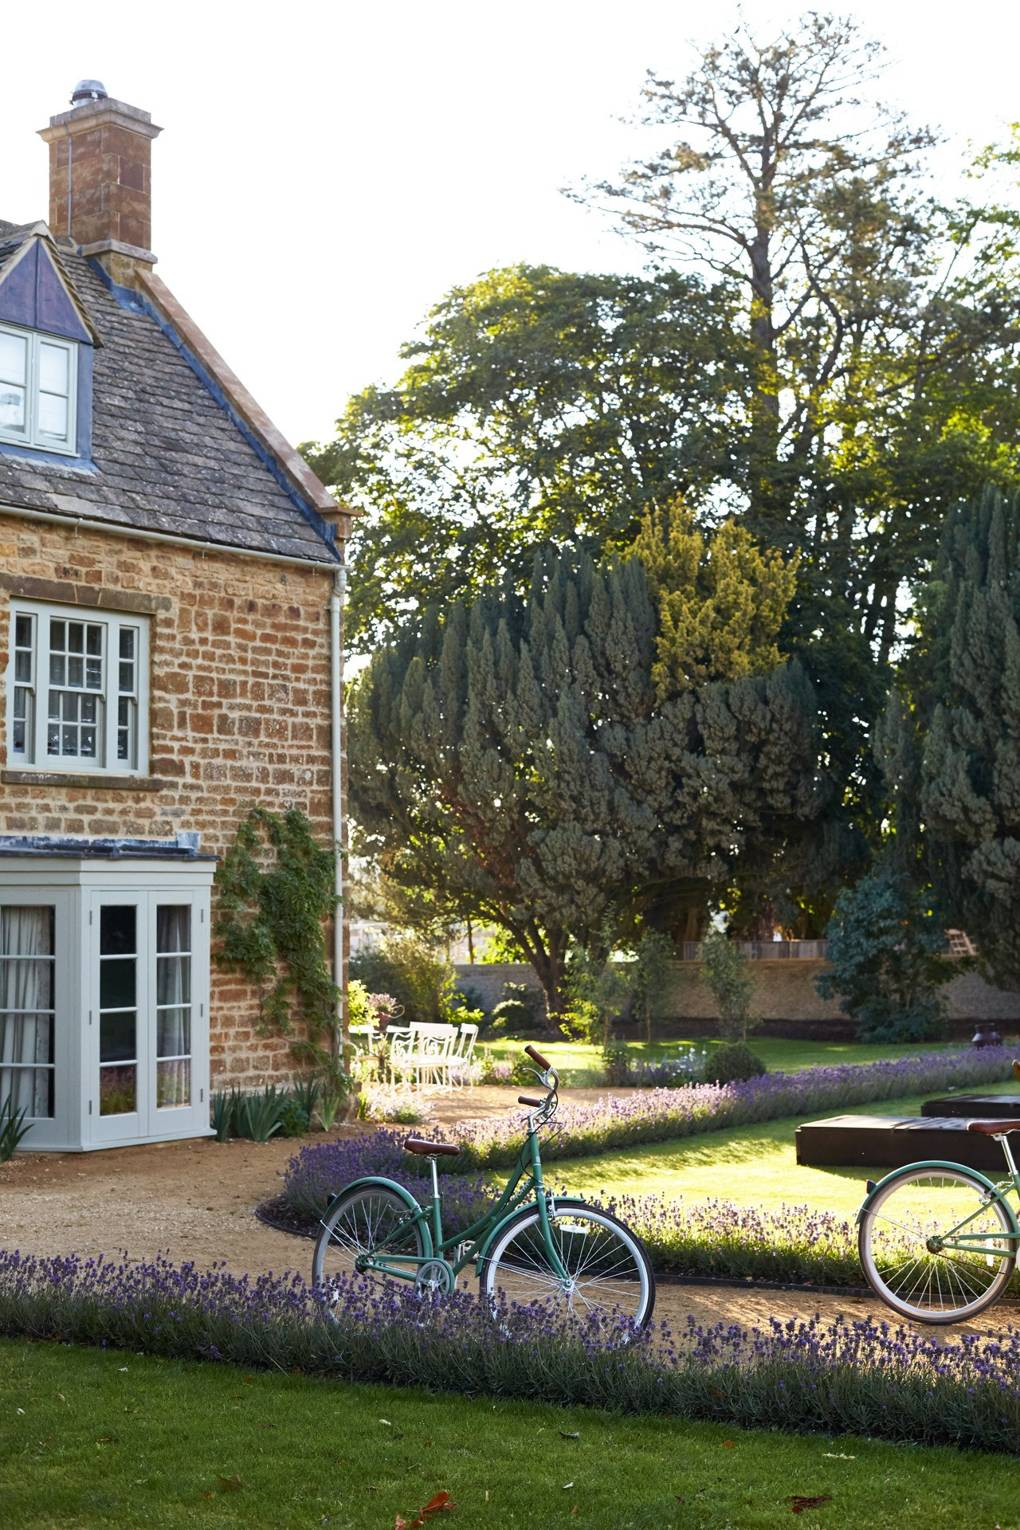 Soho Farmhouse The Coolest Hotel In The Cotswolds Cn Traveller